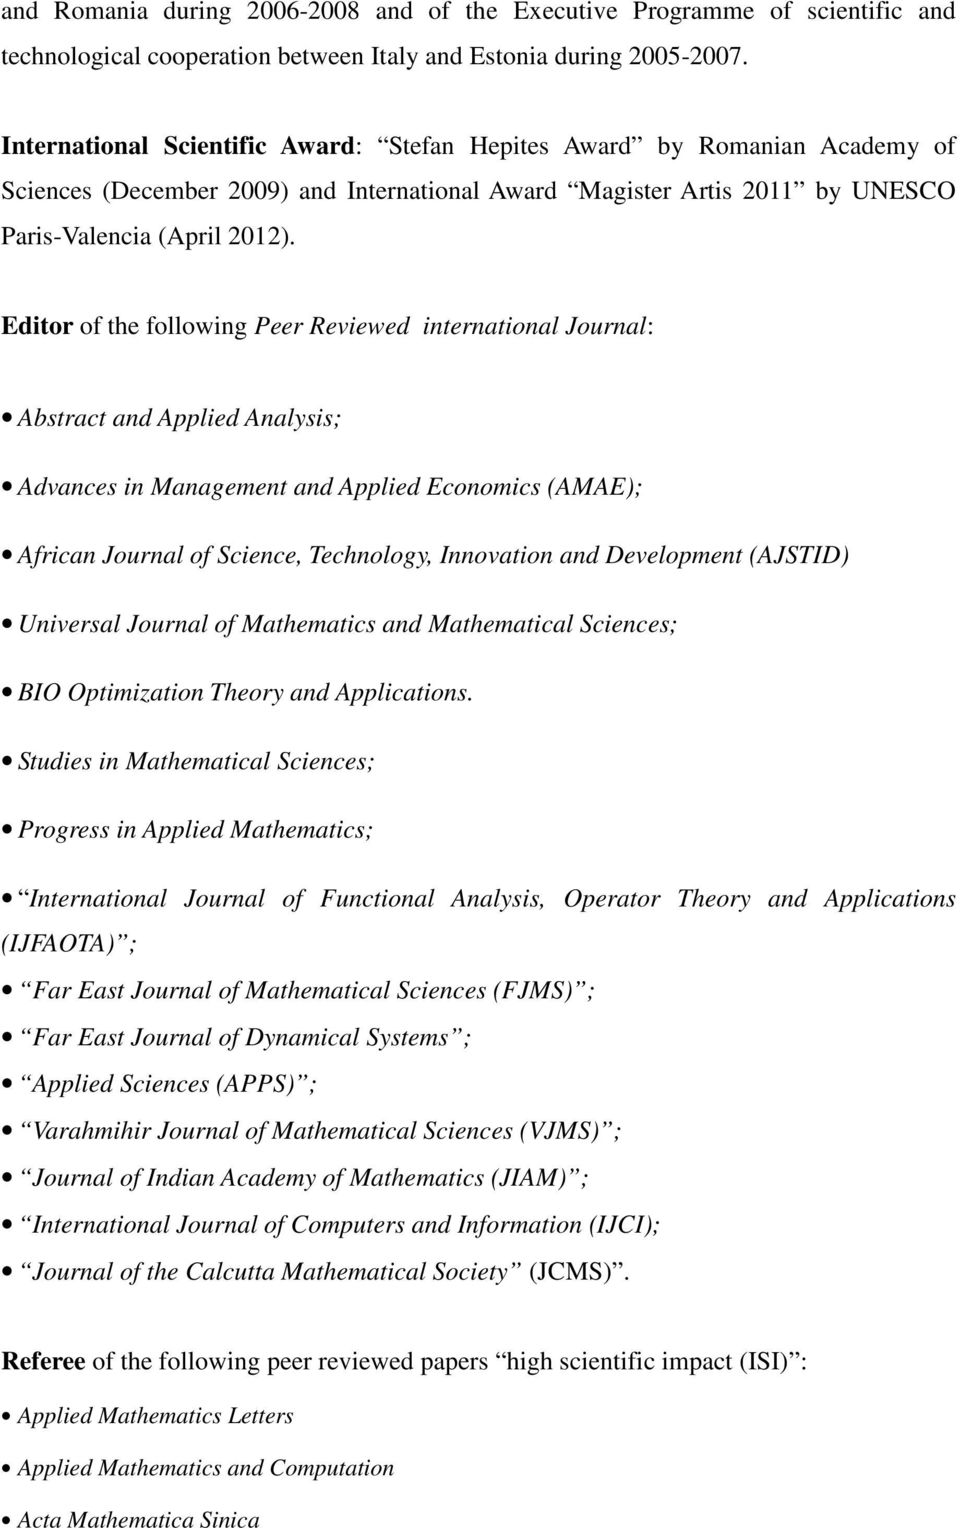 Editor of the following Peer Reviewed international Journal: Abstract and Applied Analysis; Advances in Management and Applied Economics (AMAE); African Journal of Science, Technology, Innovation and